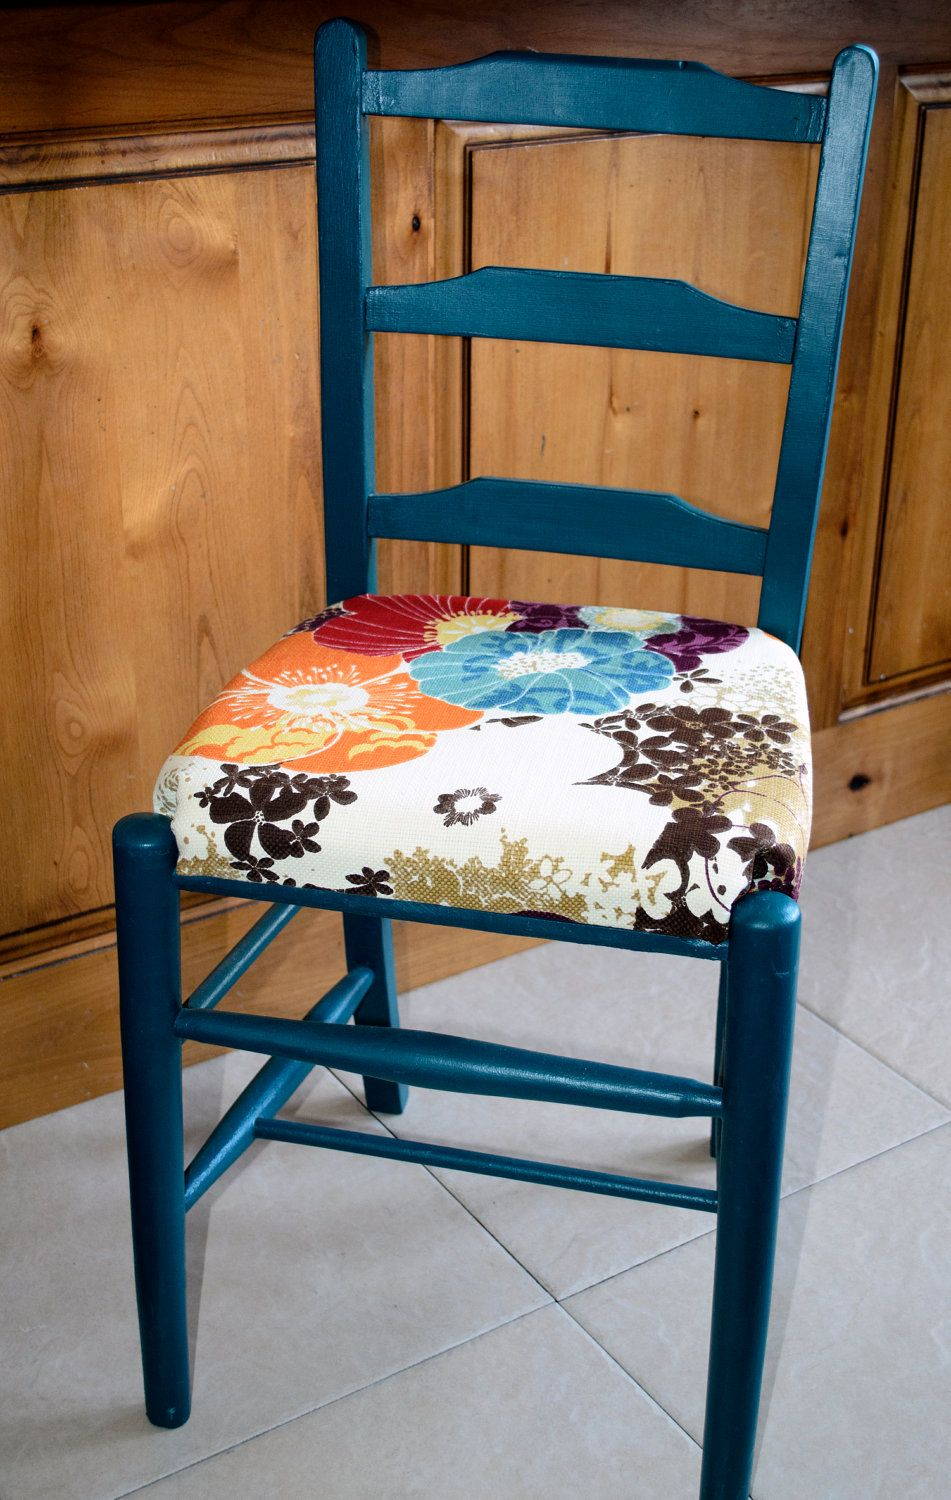 Ladder back chairs with cushions - Ladder Back Chair With Floral Seat Cushion